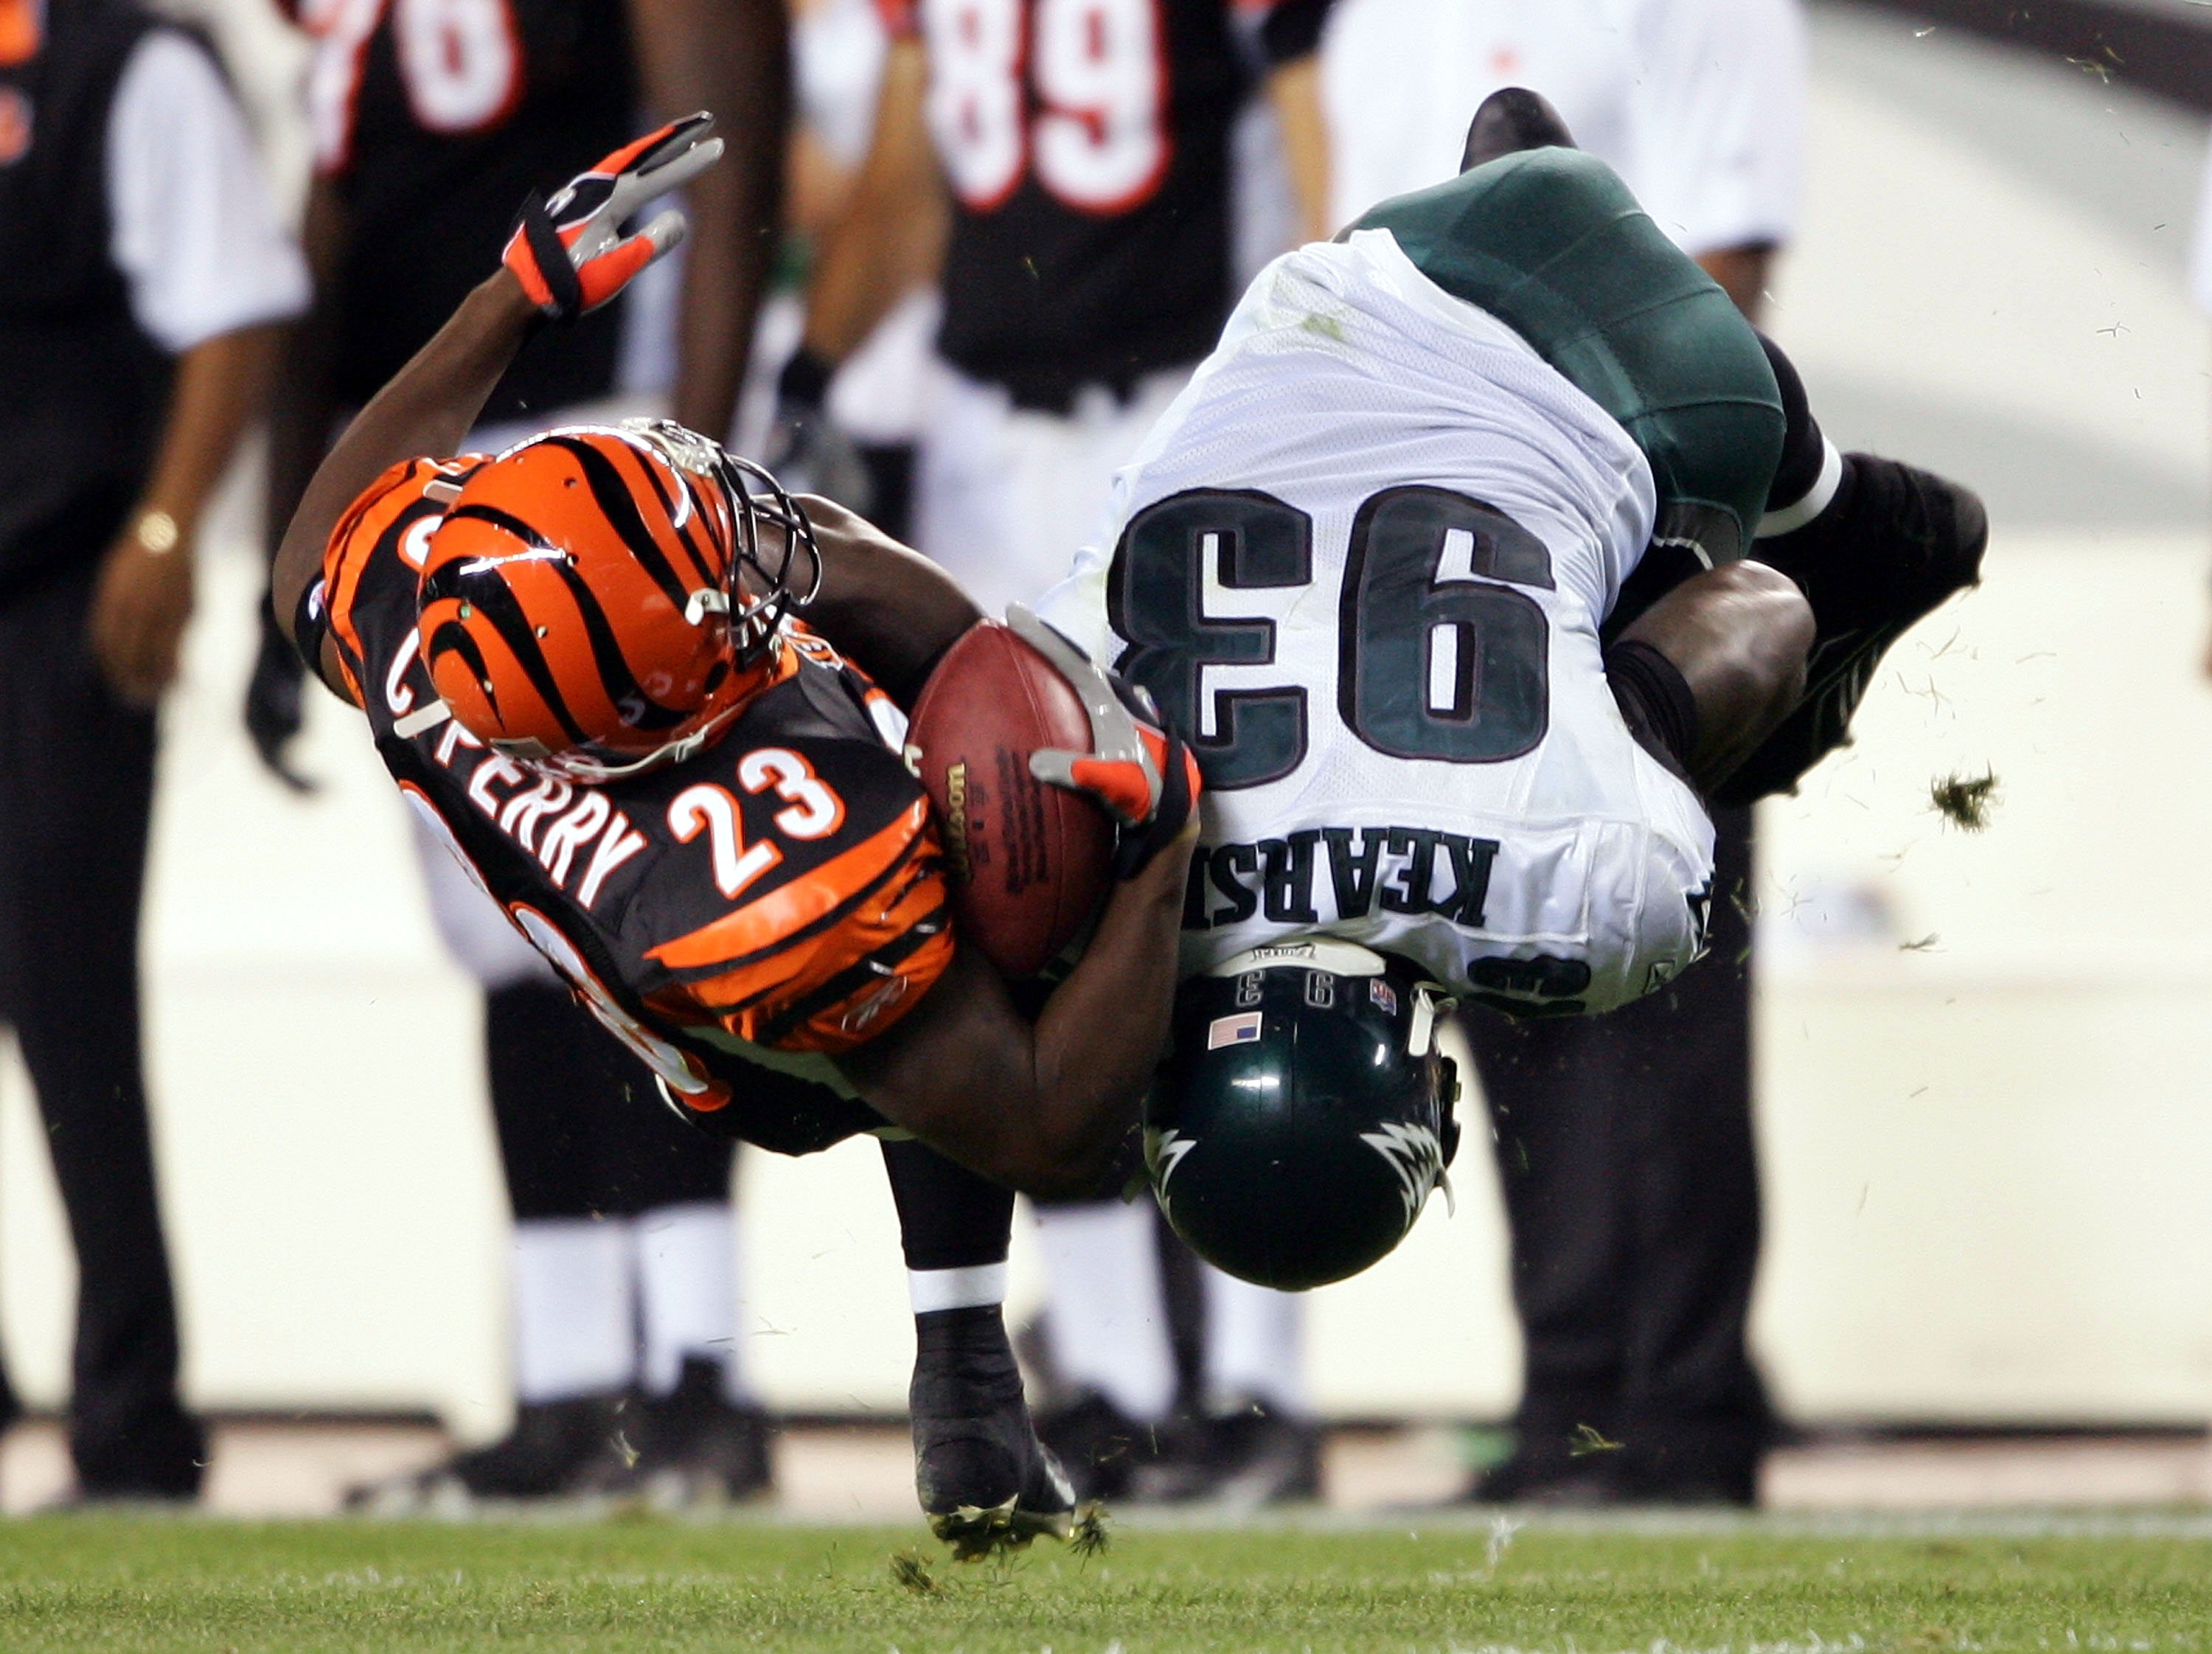 PHILADELPHIA - AUGUST 26:  Defensive end Jevon Kearse #93 of the Philadelphia Eagles knocks over running back Chris Perry #23 of the Cincinnati Bengals during the first half of their preseason game on August 26, 2005 at Lincoln Financial Field in Philadel